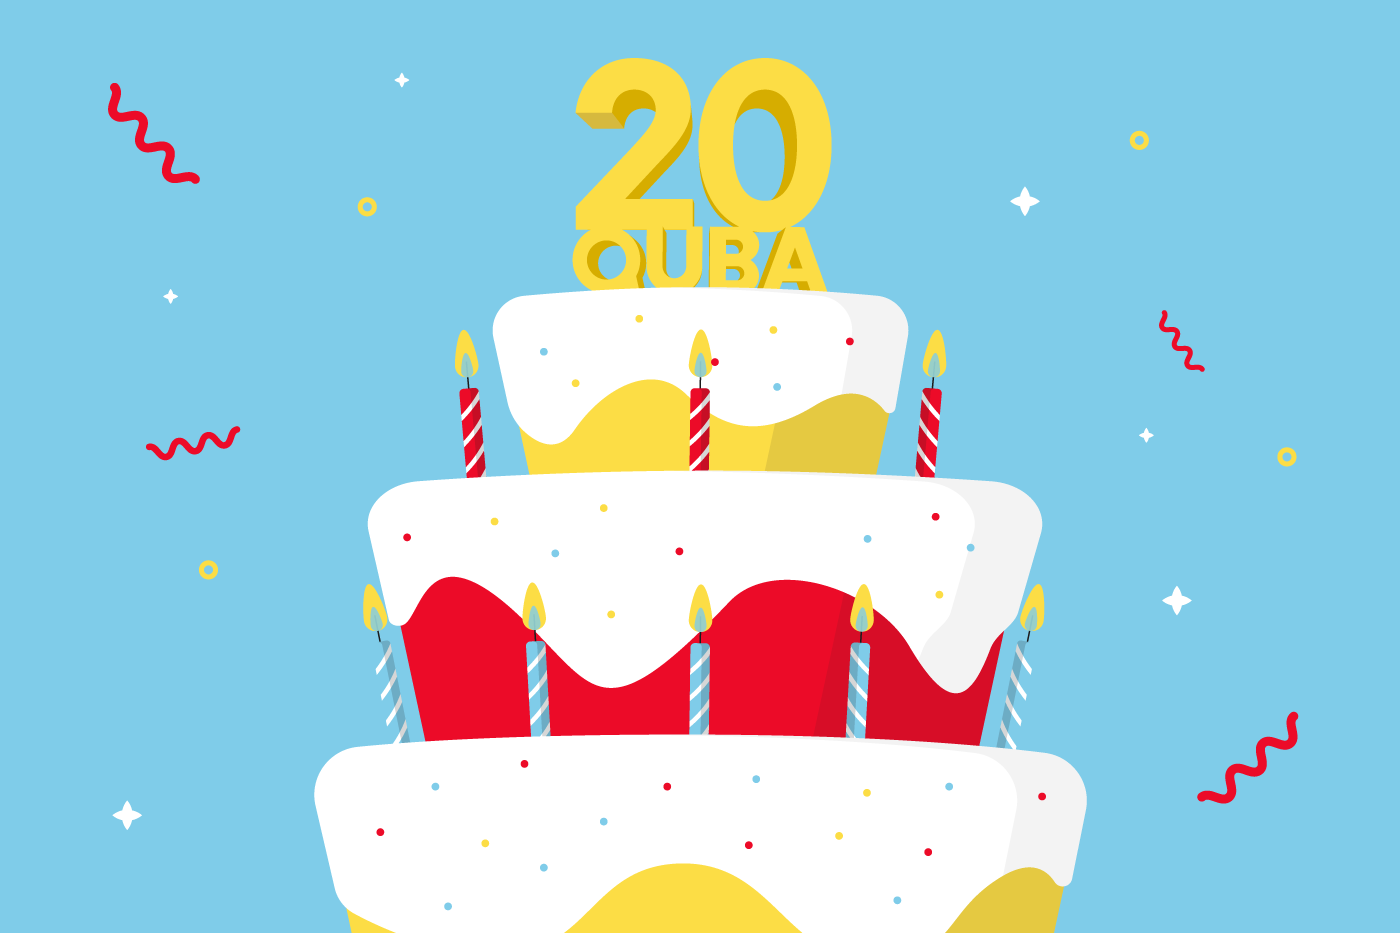 Web technology agency Quba celebrate their 20-year birthday